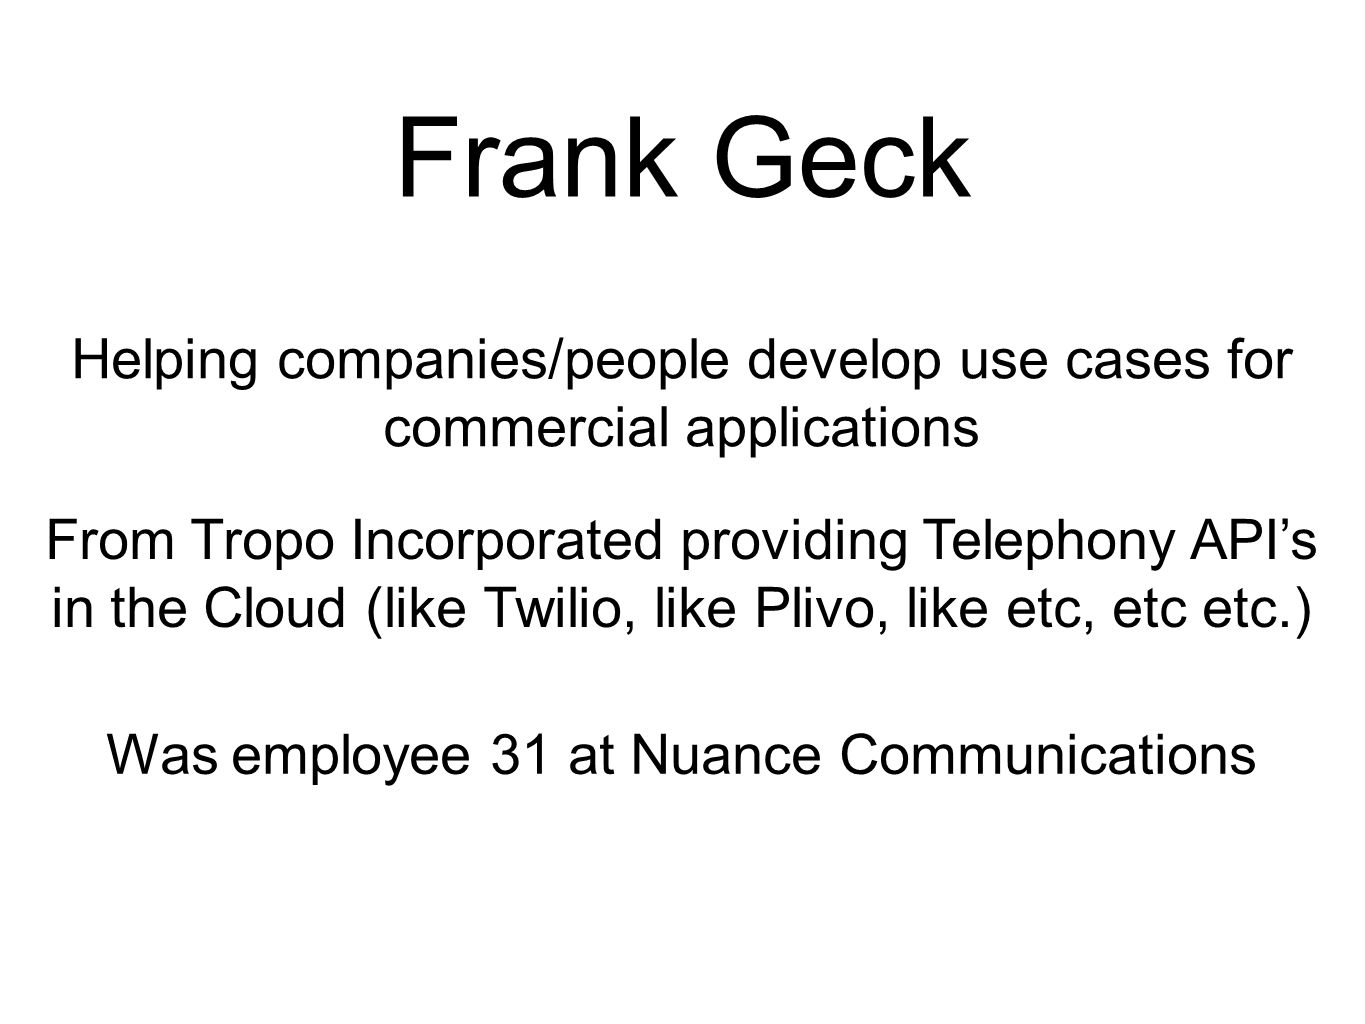 Frank Geck Helping companies/people develop use cases for commercial applications. From Tropo Incorporated providing Telephony API's.